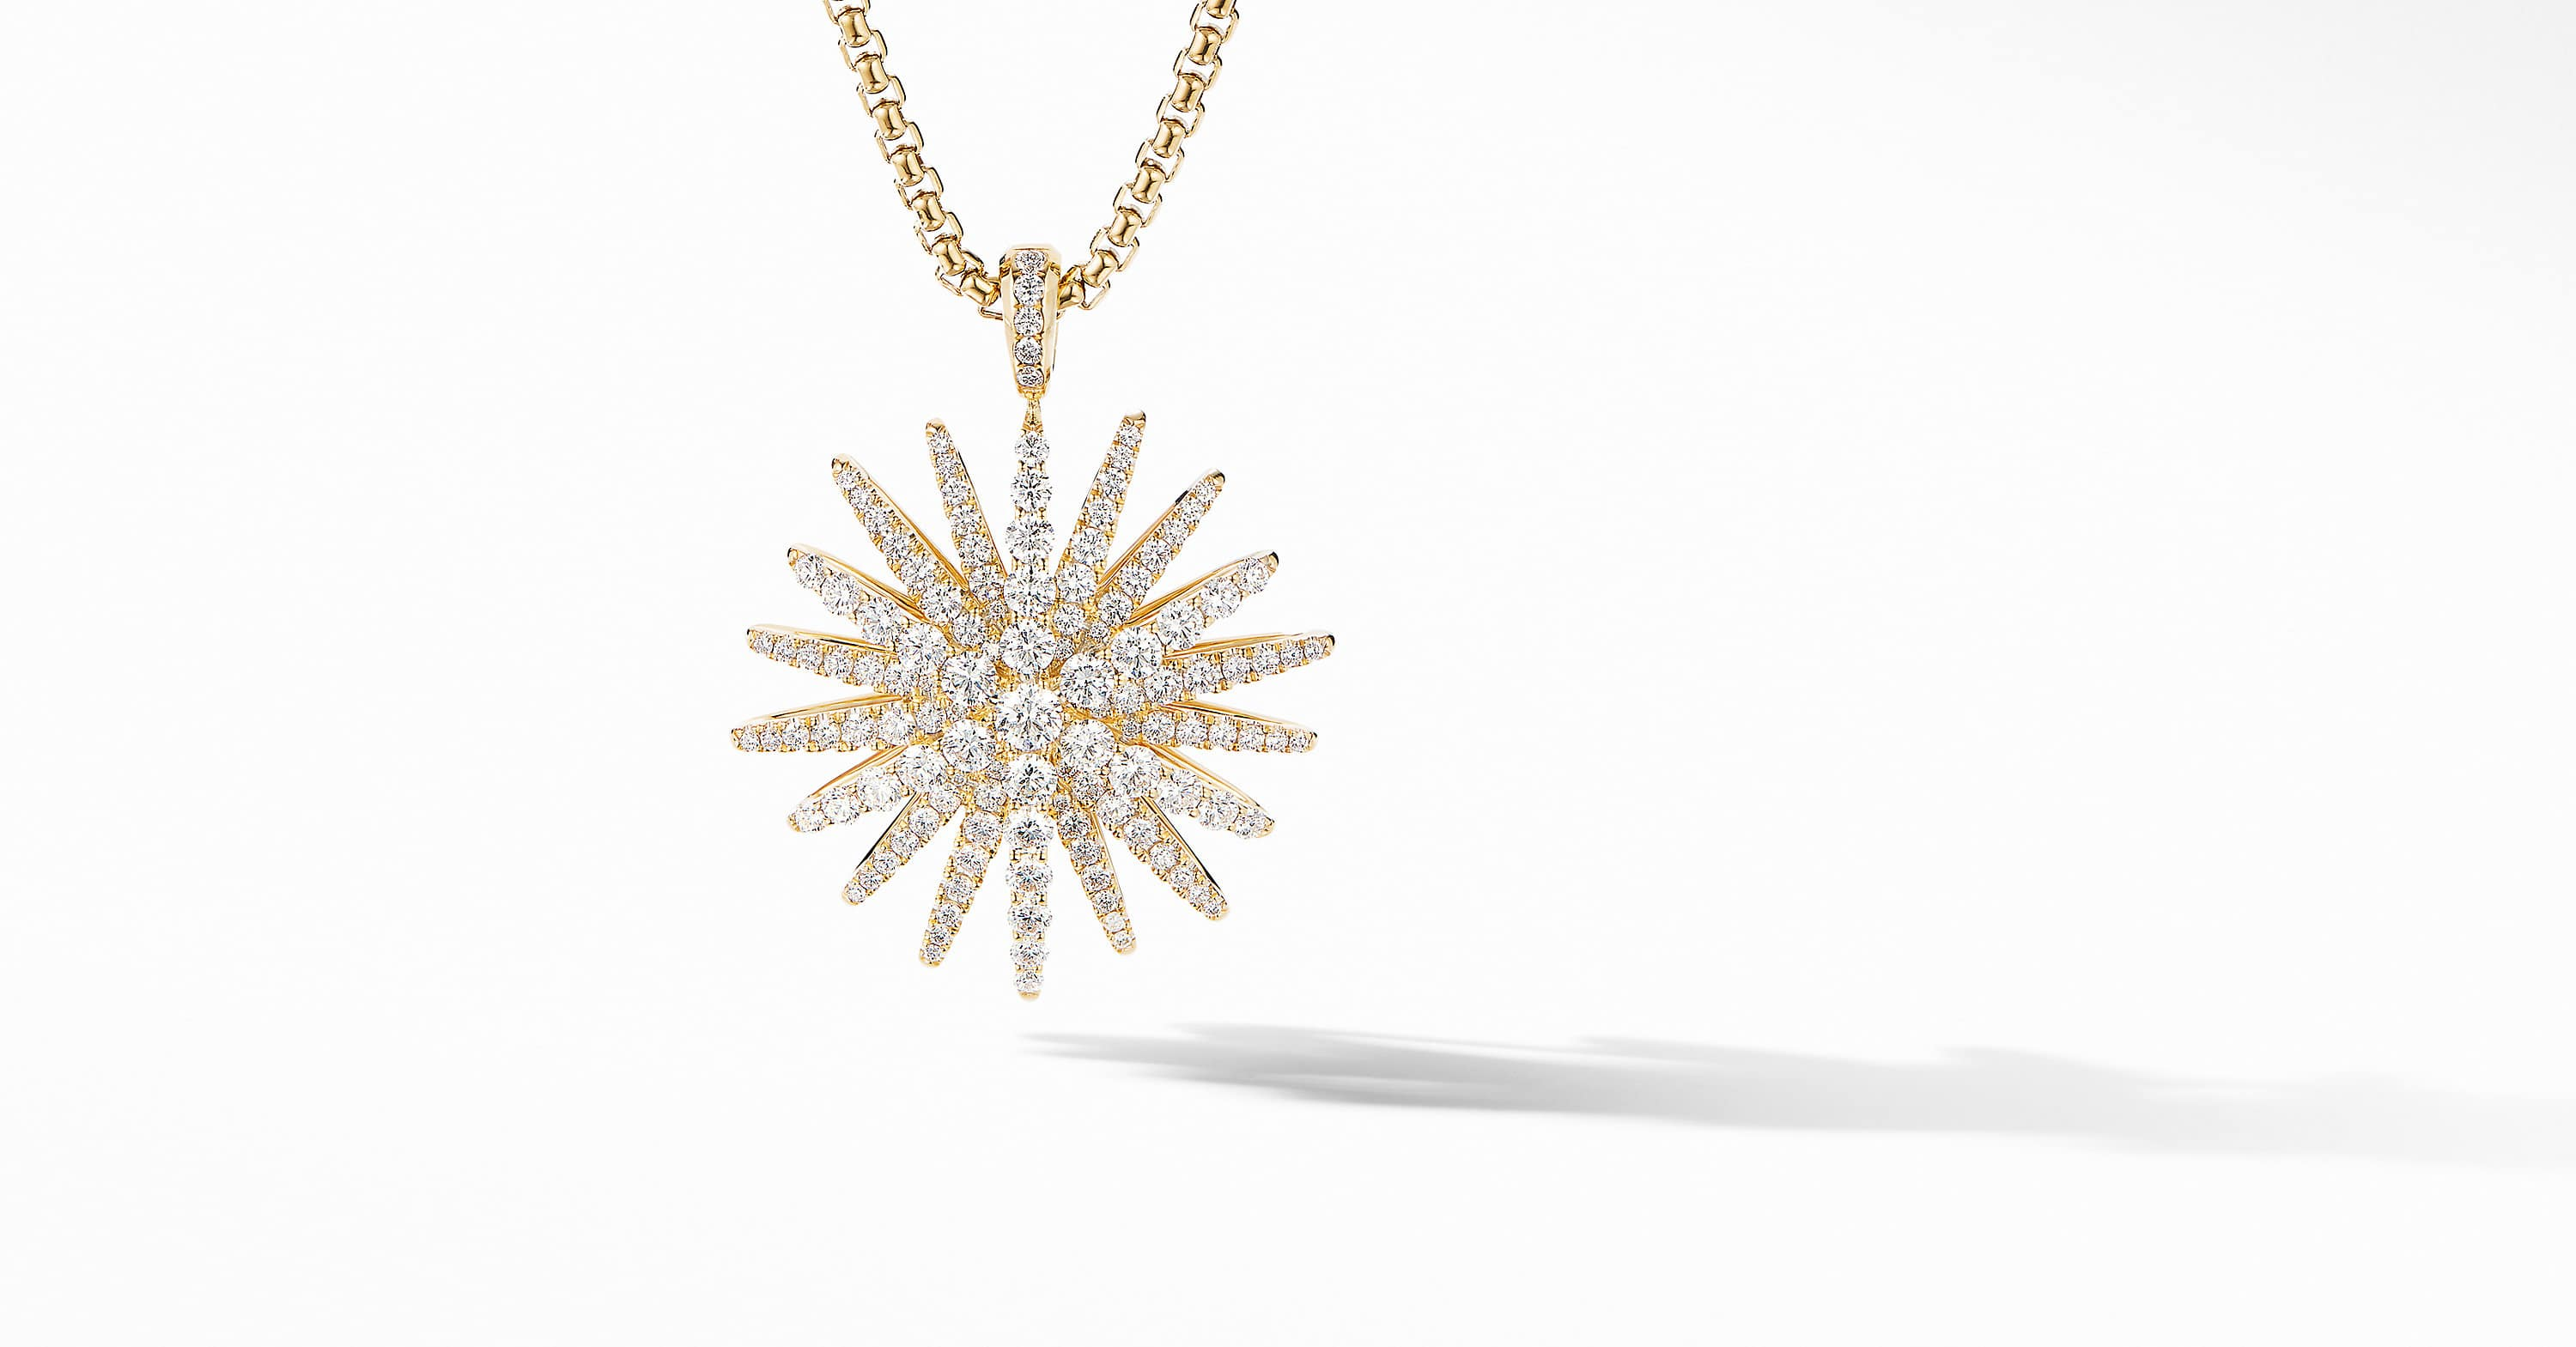 Starburst Pendant in 18K Yellow Gold with Full Pavé